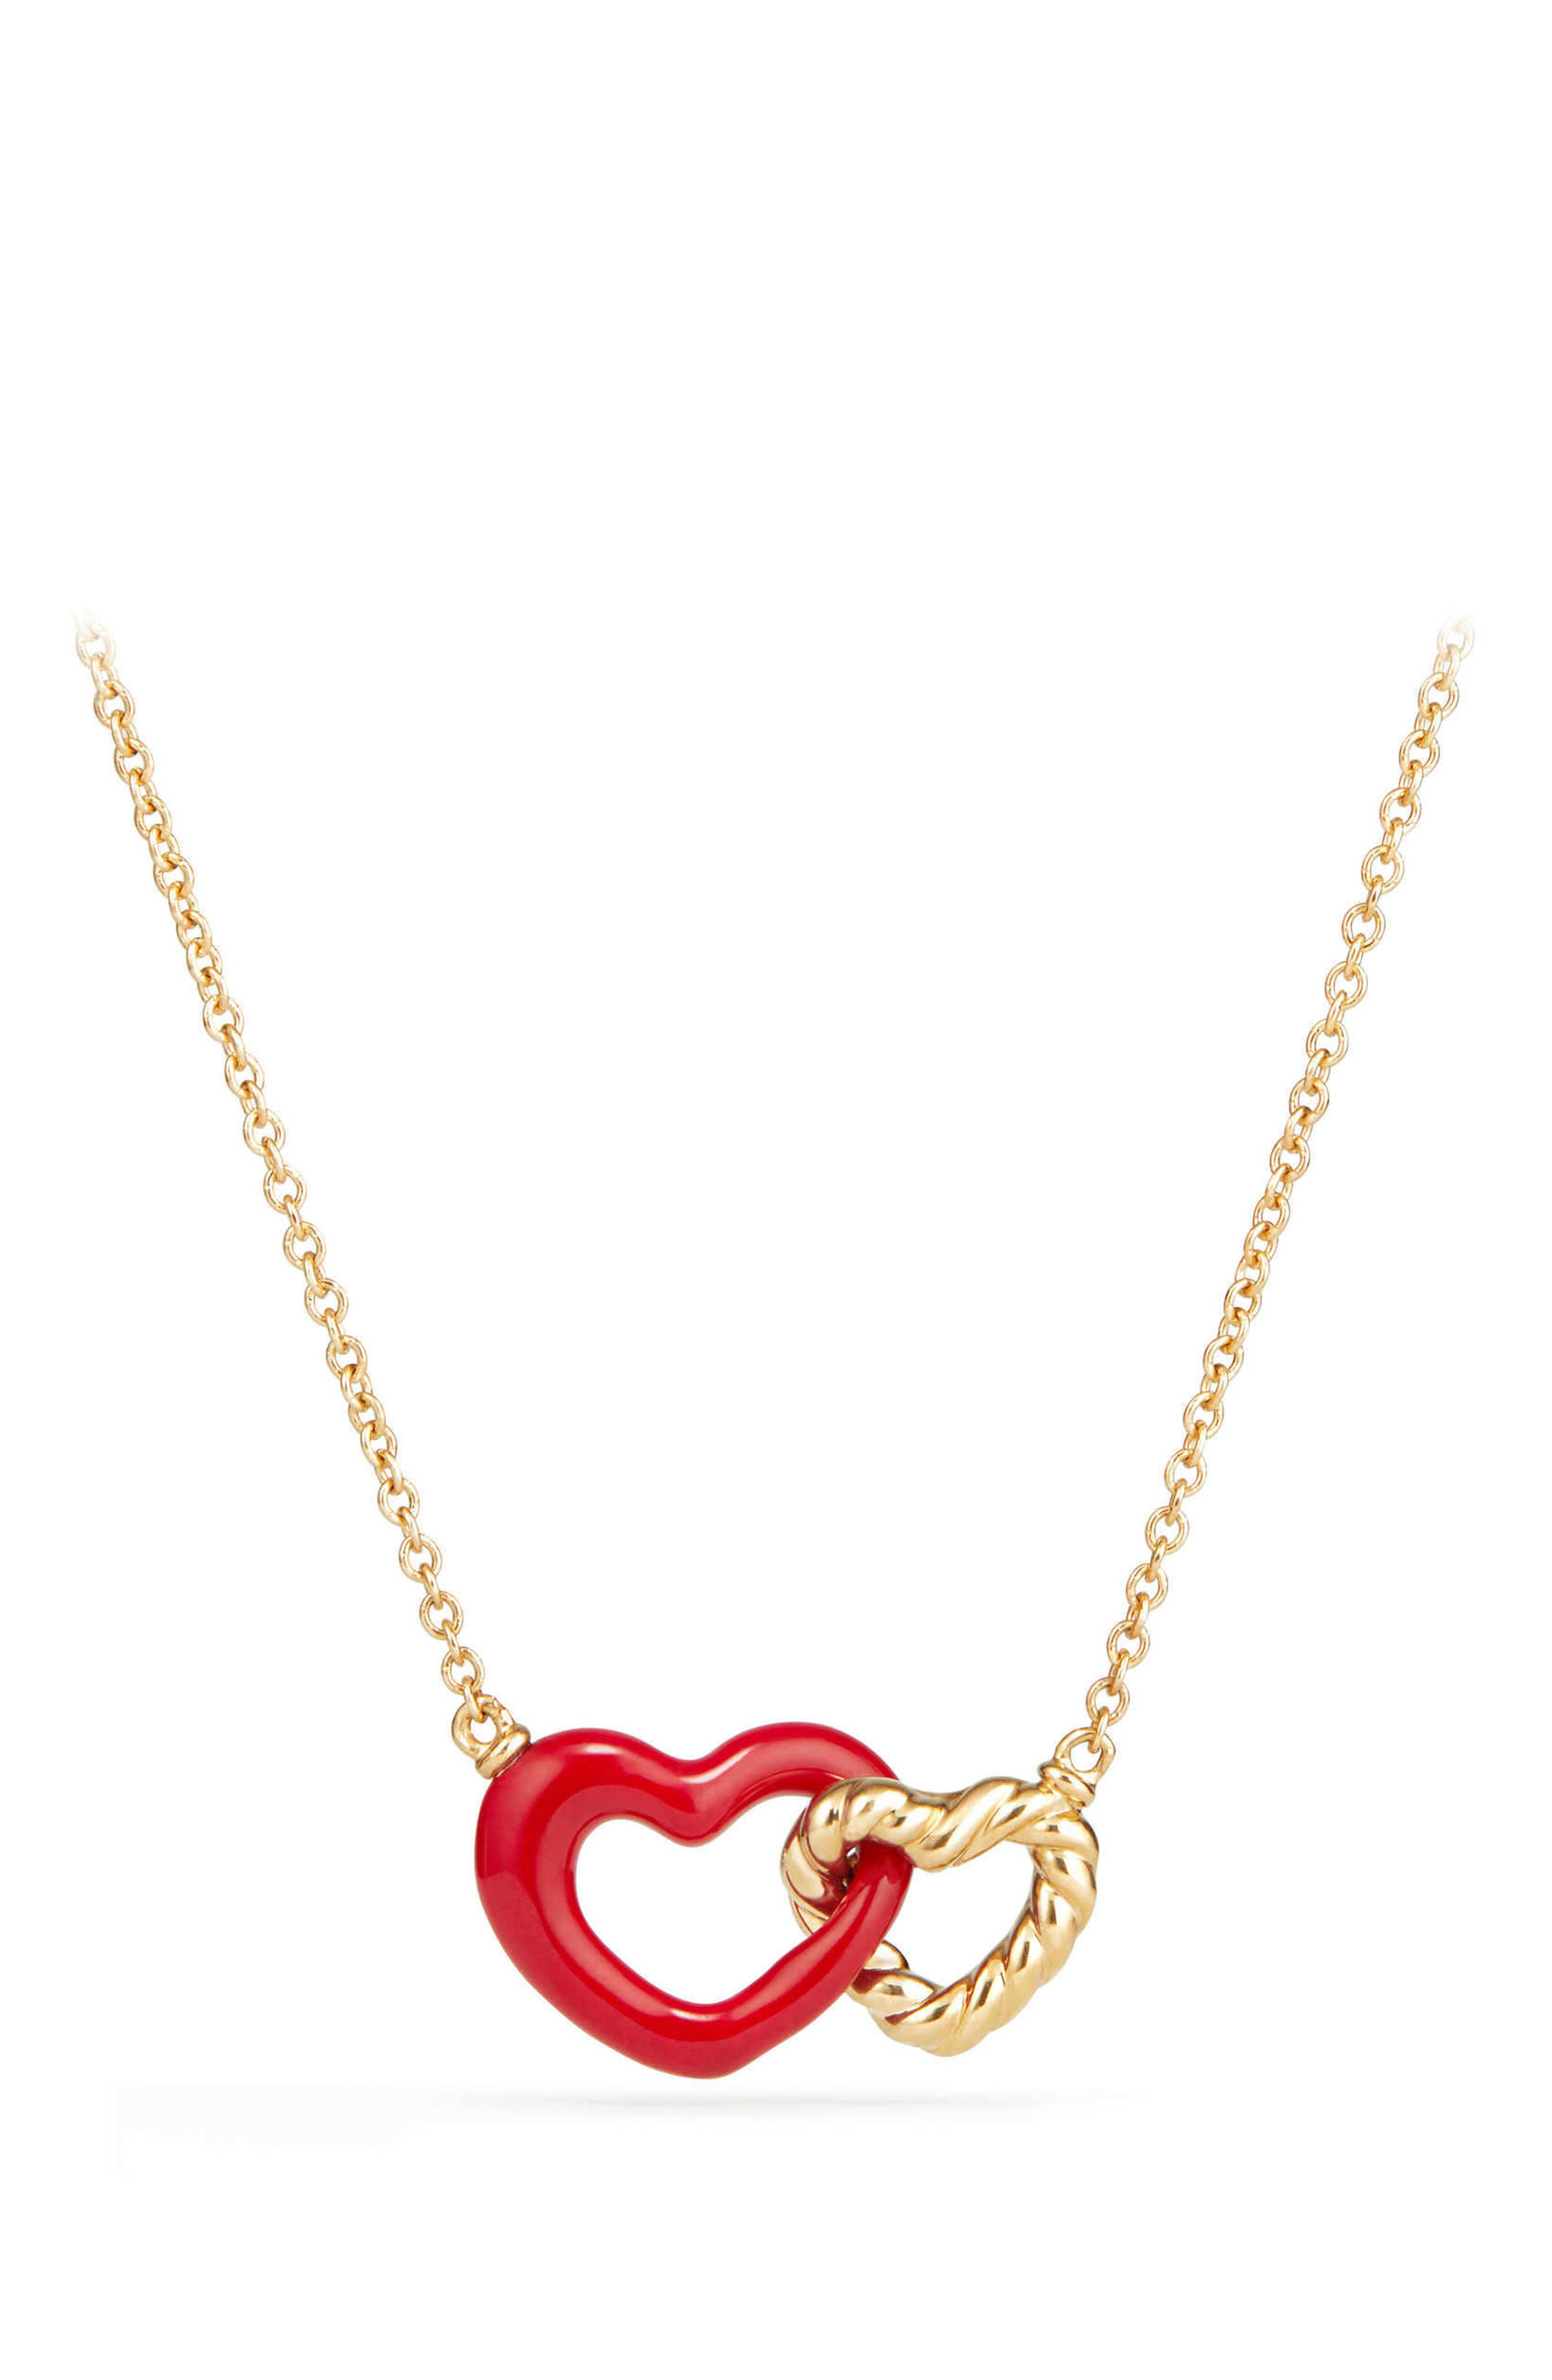 Double Heart Pendant Necklace with Red Enamel and 18K Gold,                         Main,                         color, Gold